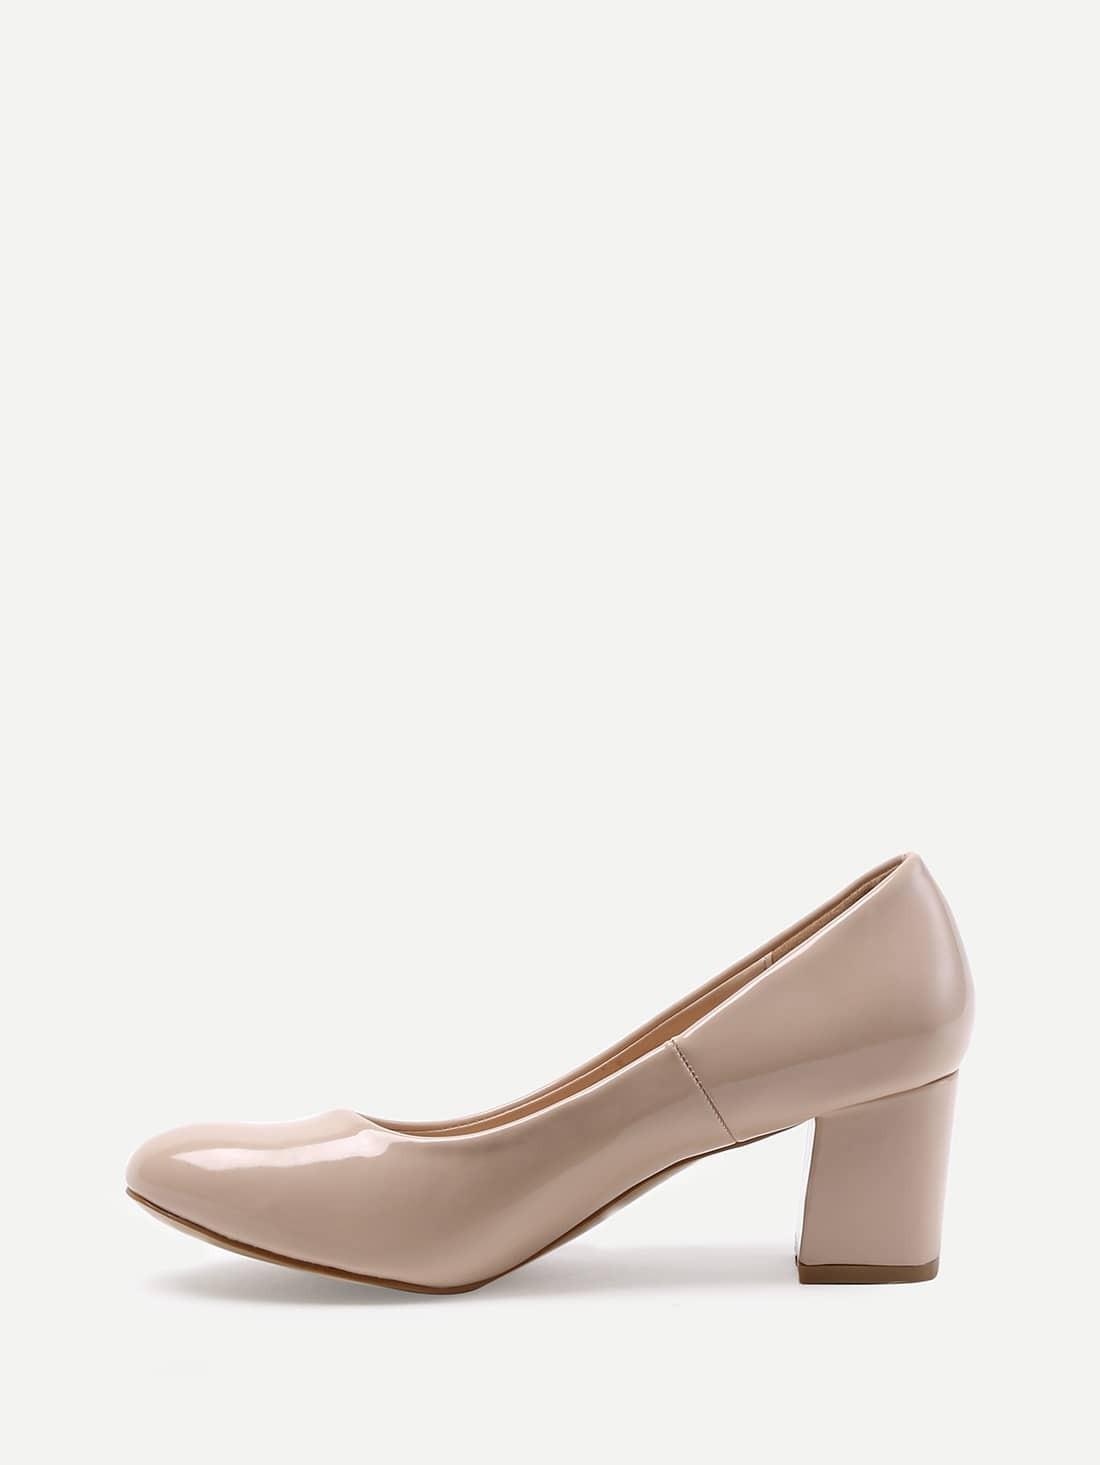 Nude Patent Leather Heels shoes16033009